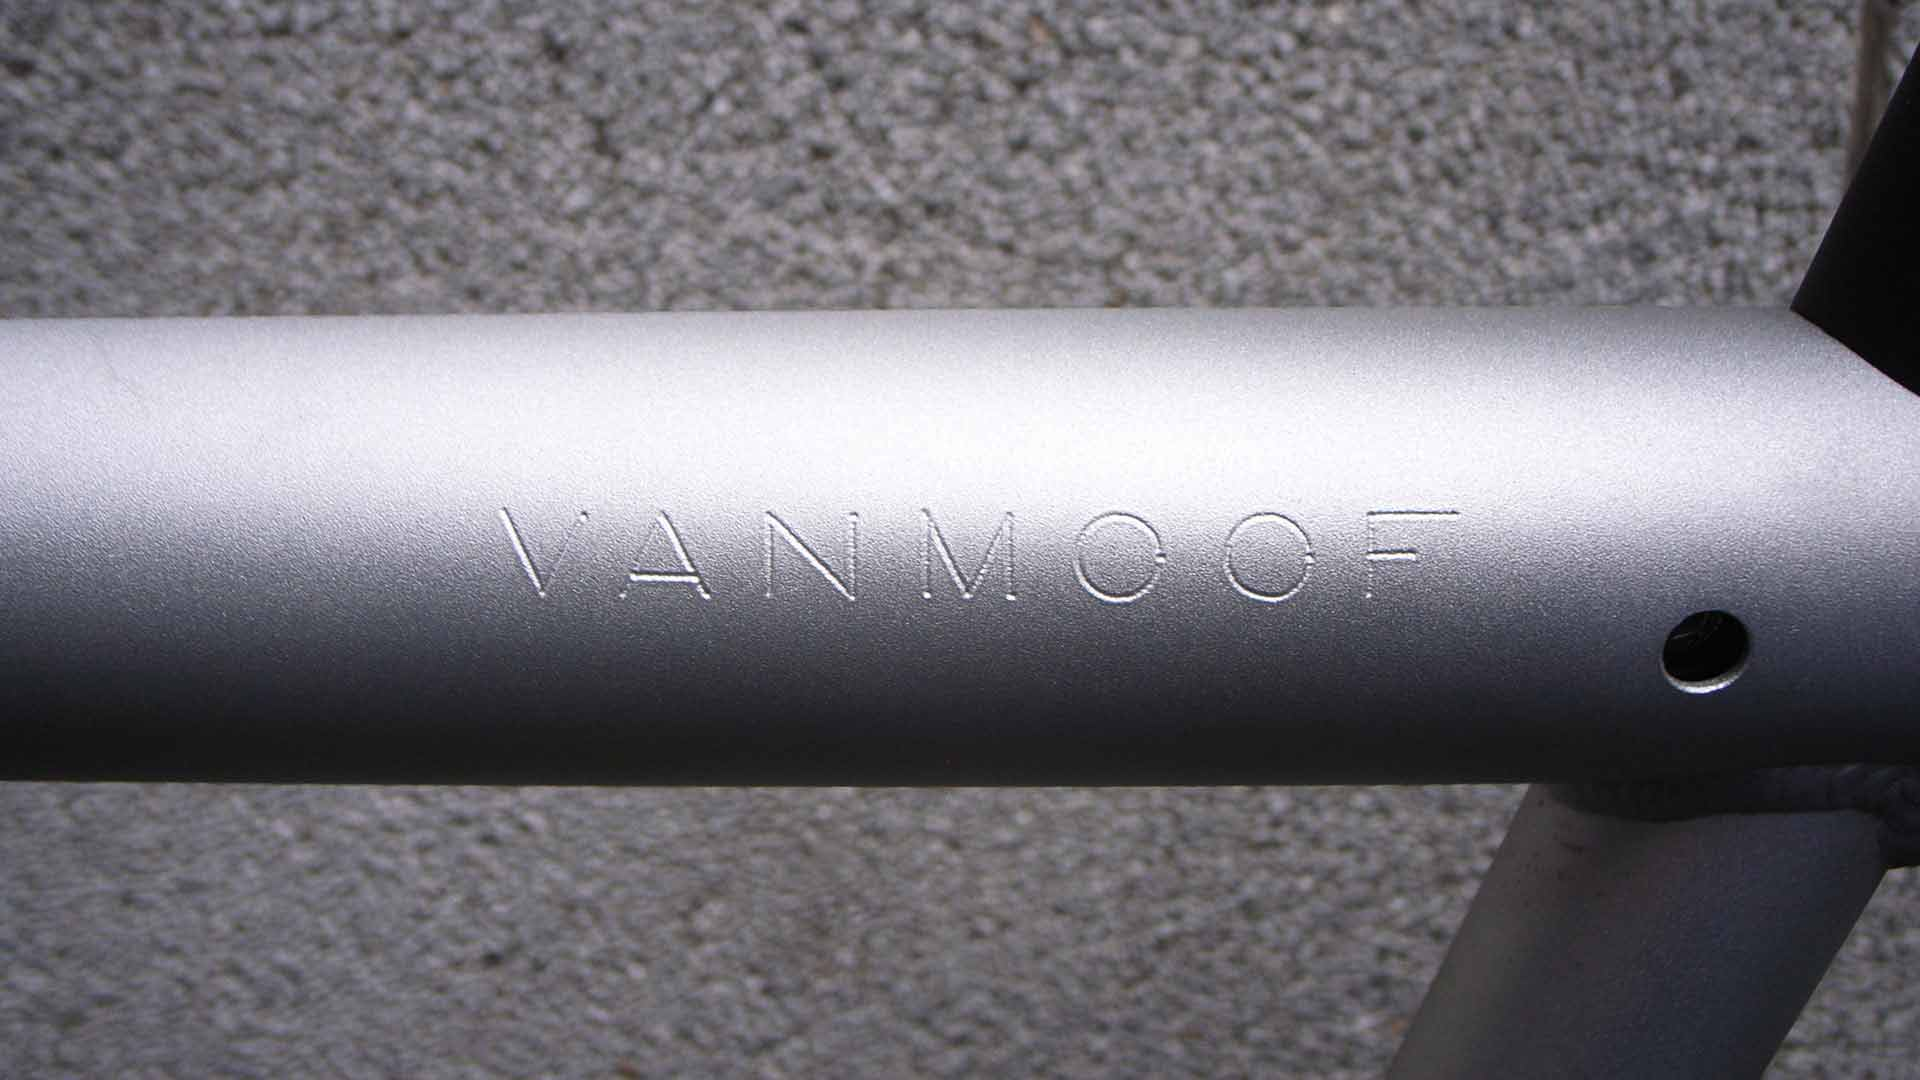 vanmoofelectrified_3